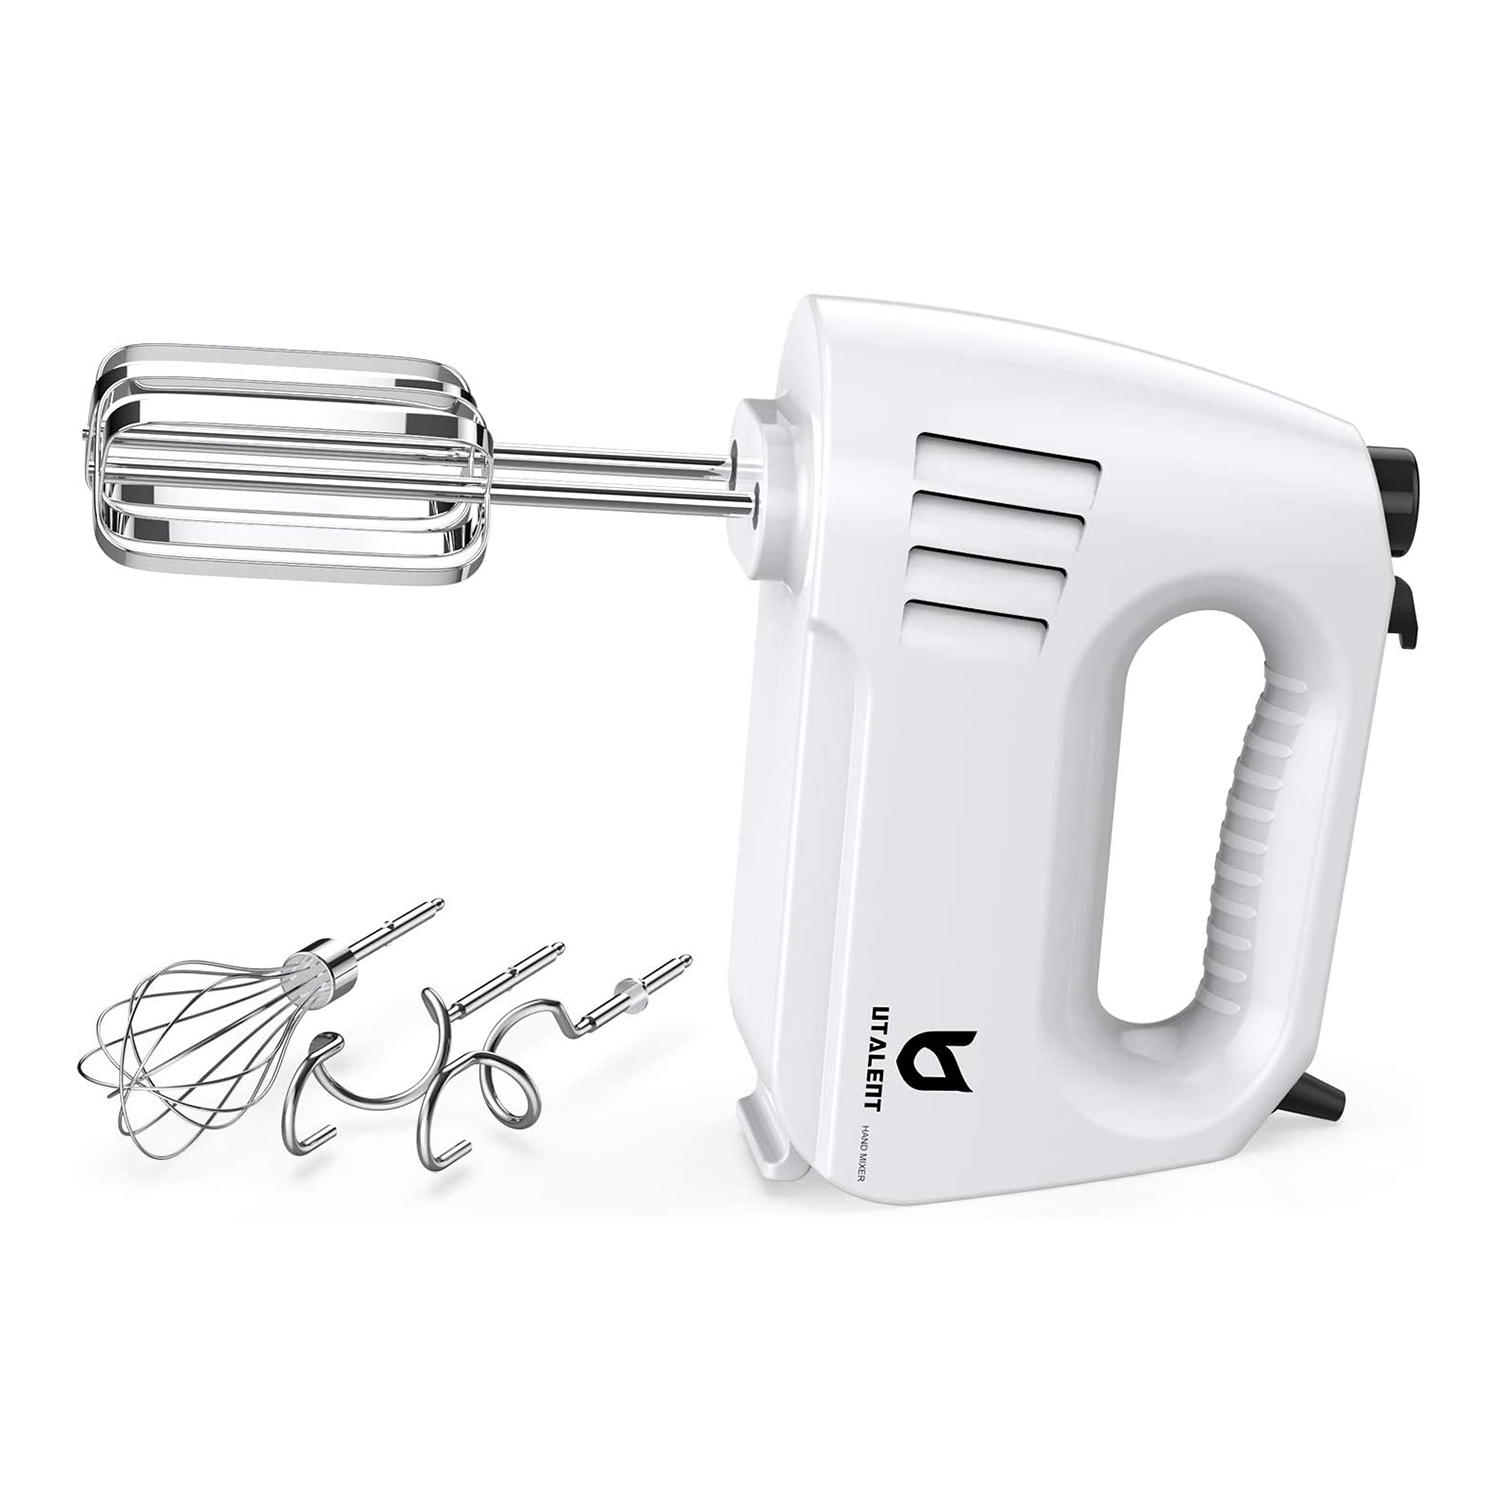 Hand Mixer Electric, Utalent 180W Multi-speed Hand Mixer with Turbo Button